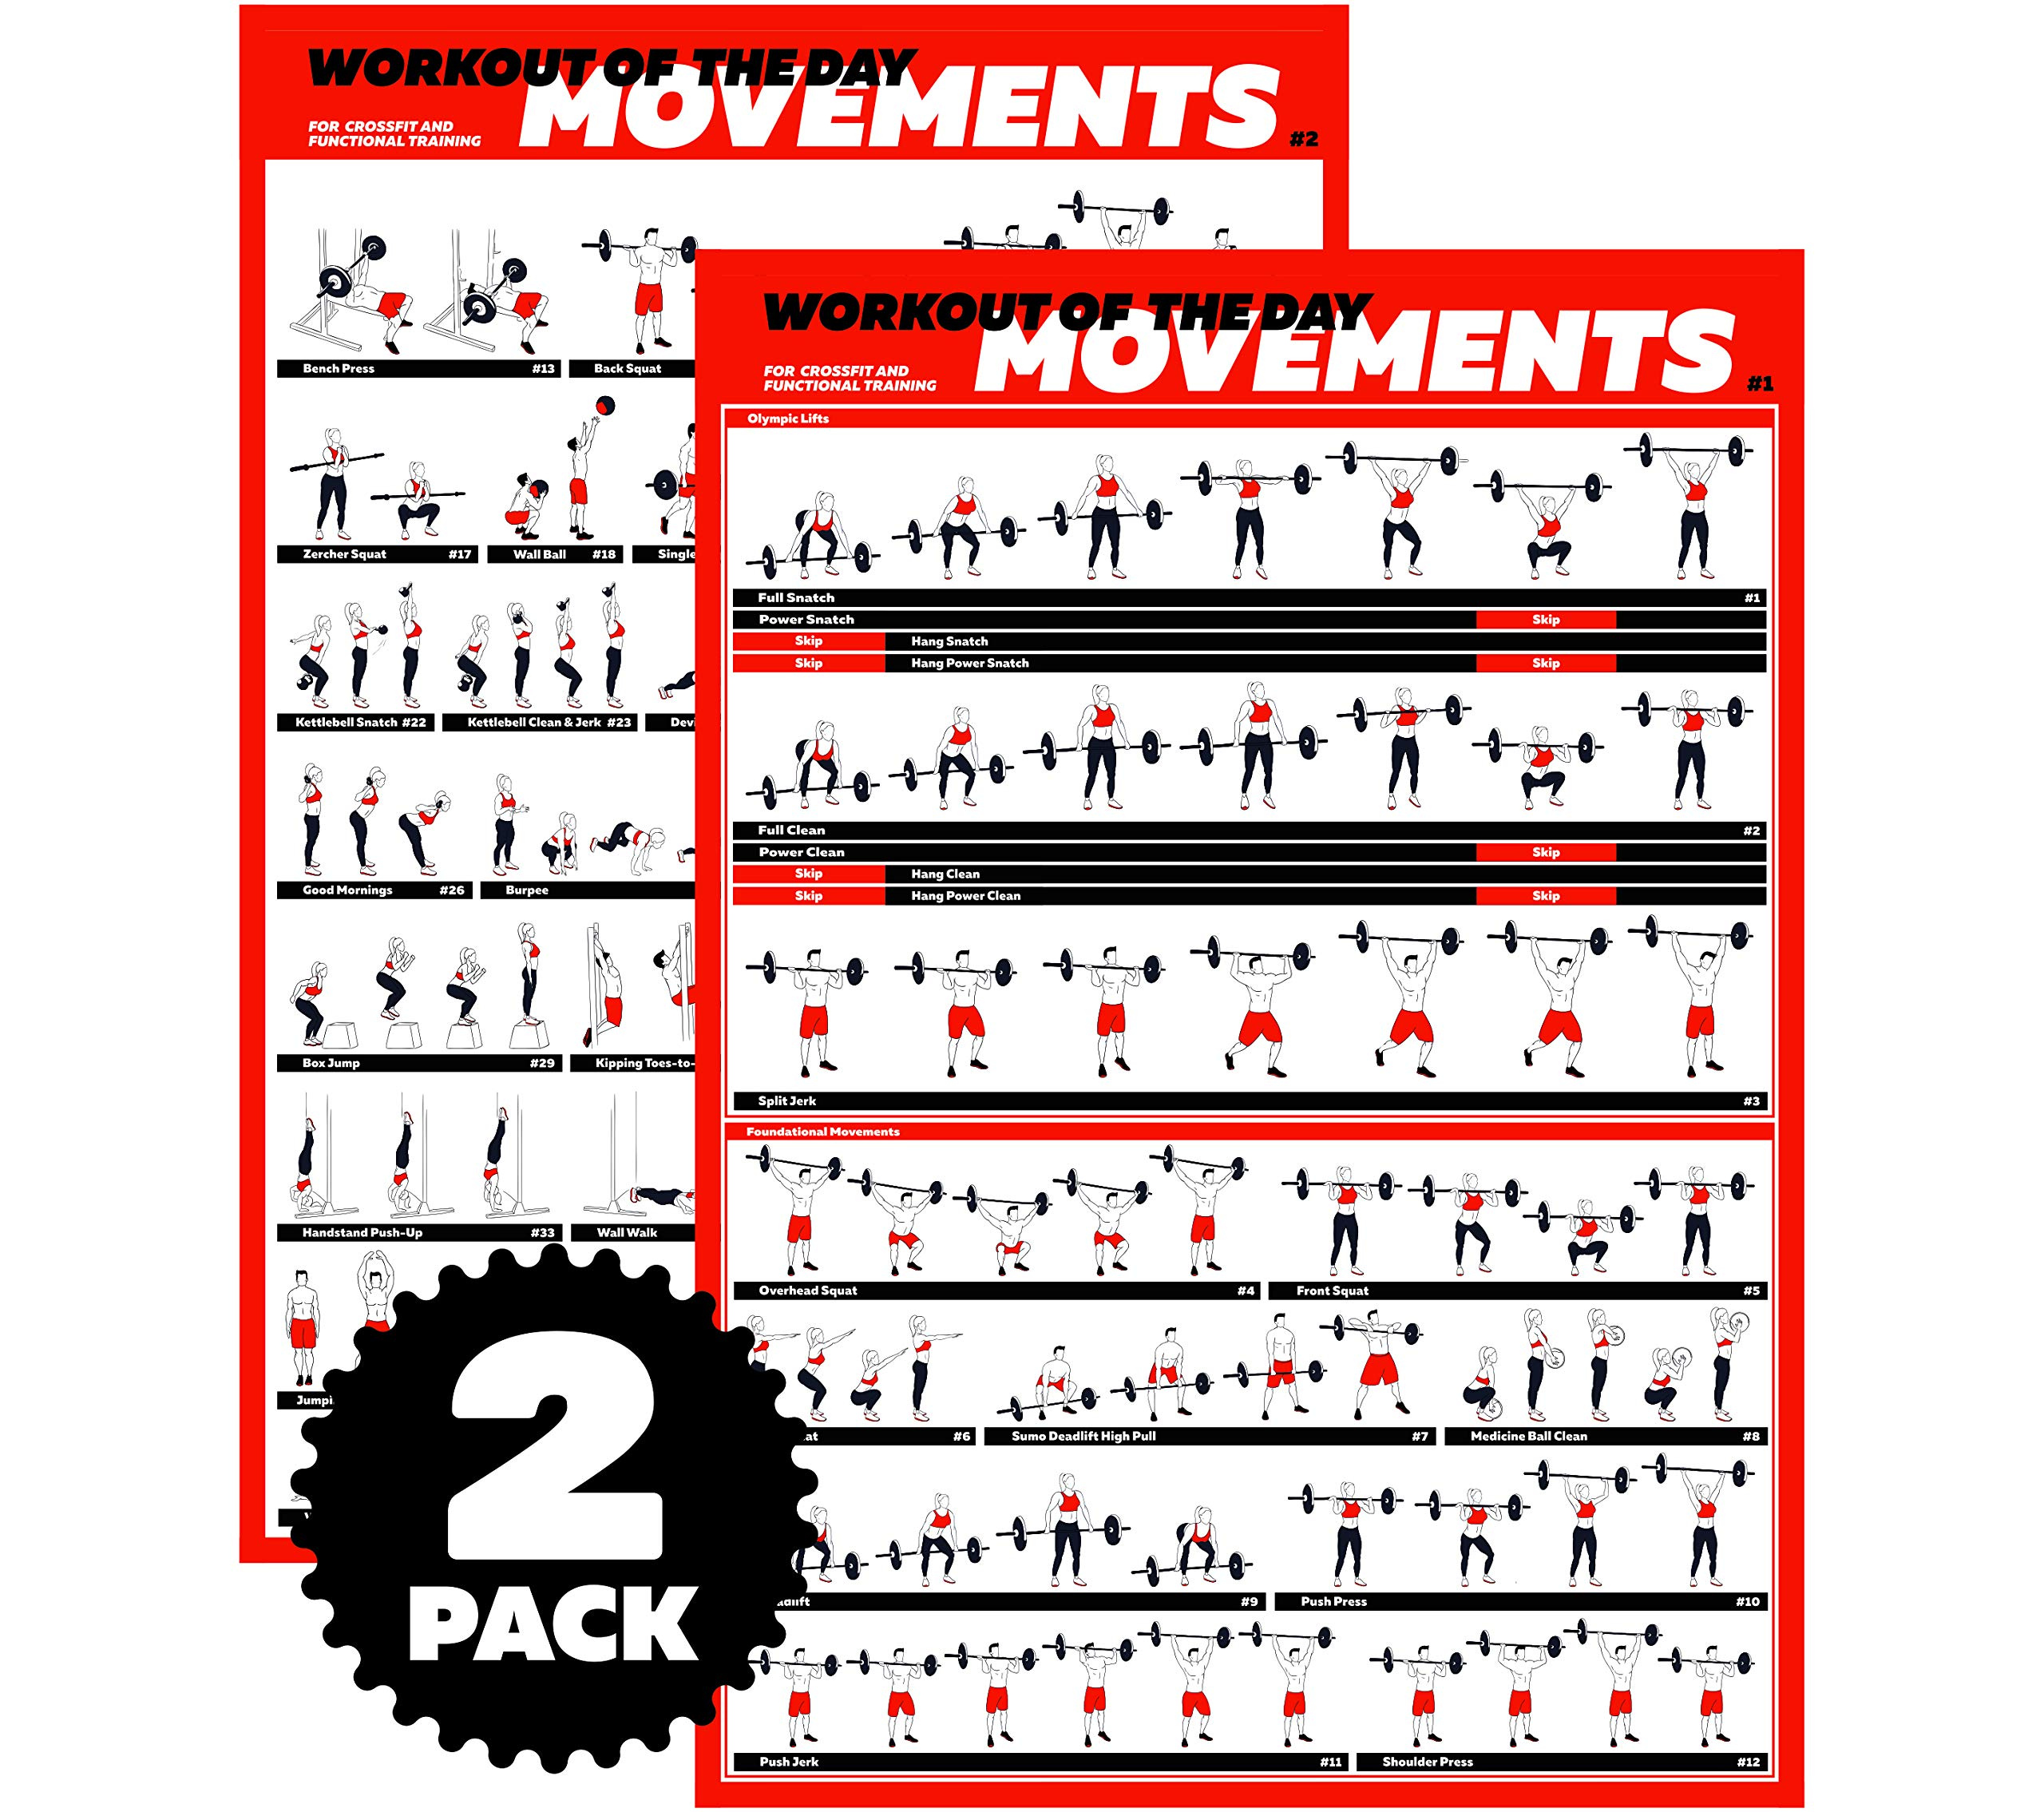 Profit Crossfit Exercise Workout Poster Set - Guide with 45 Main WOD Movements for Full Body Training - Bodyweight, Barbell, Dumbbell, Kettlebell Training Posters - (2 Laminated Posters 24'' x 17'')